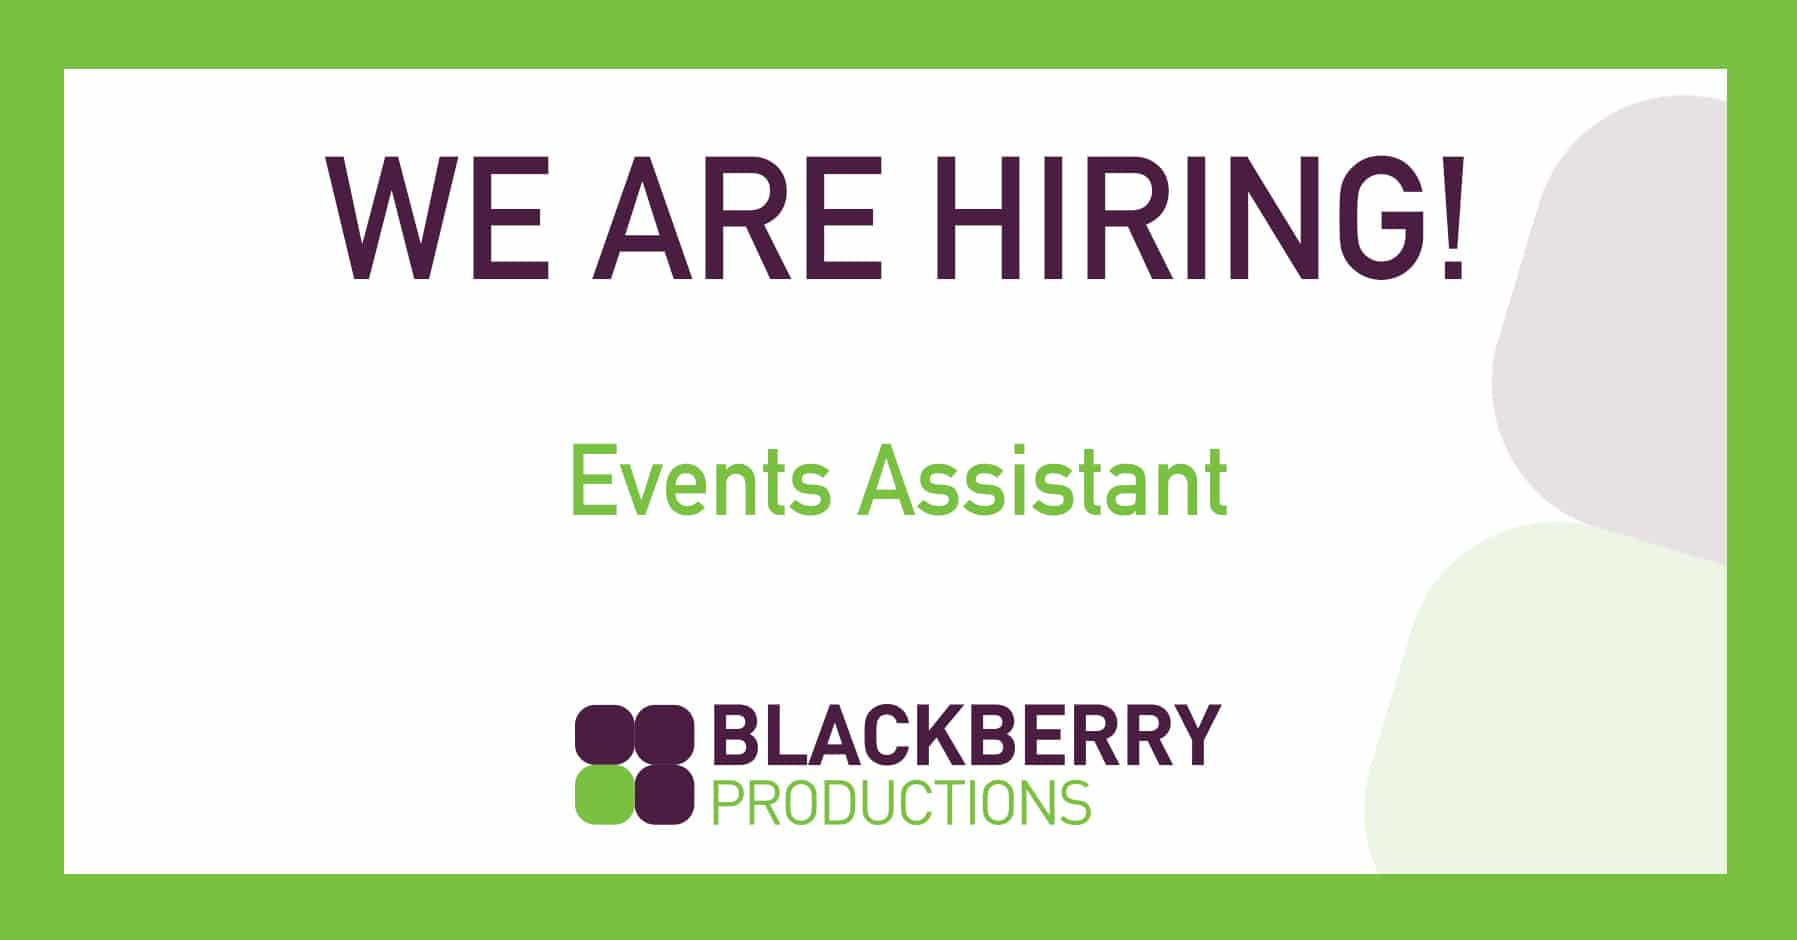 We are Hiring Events Assistant